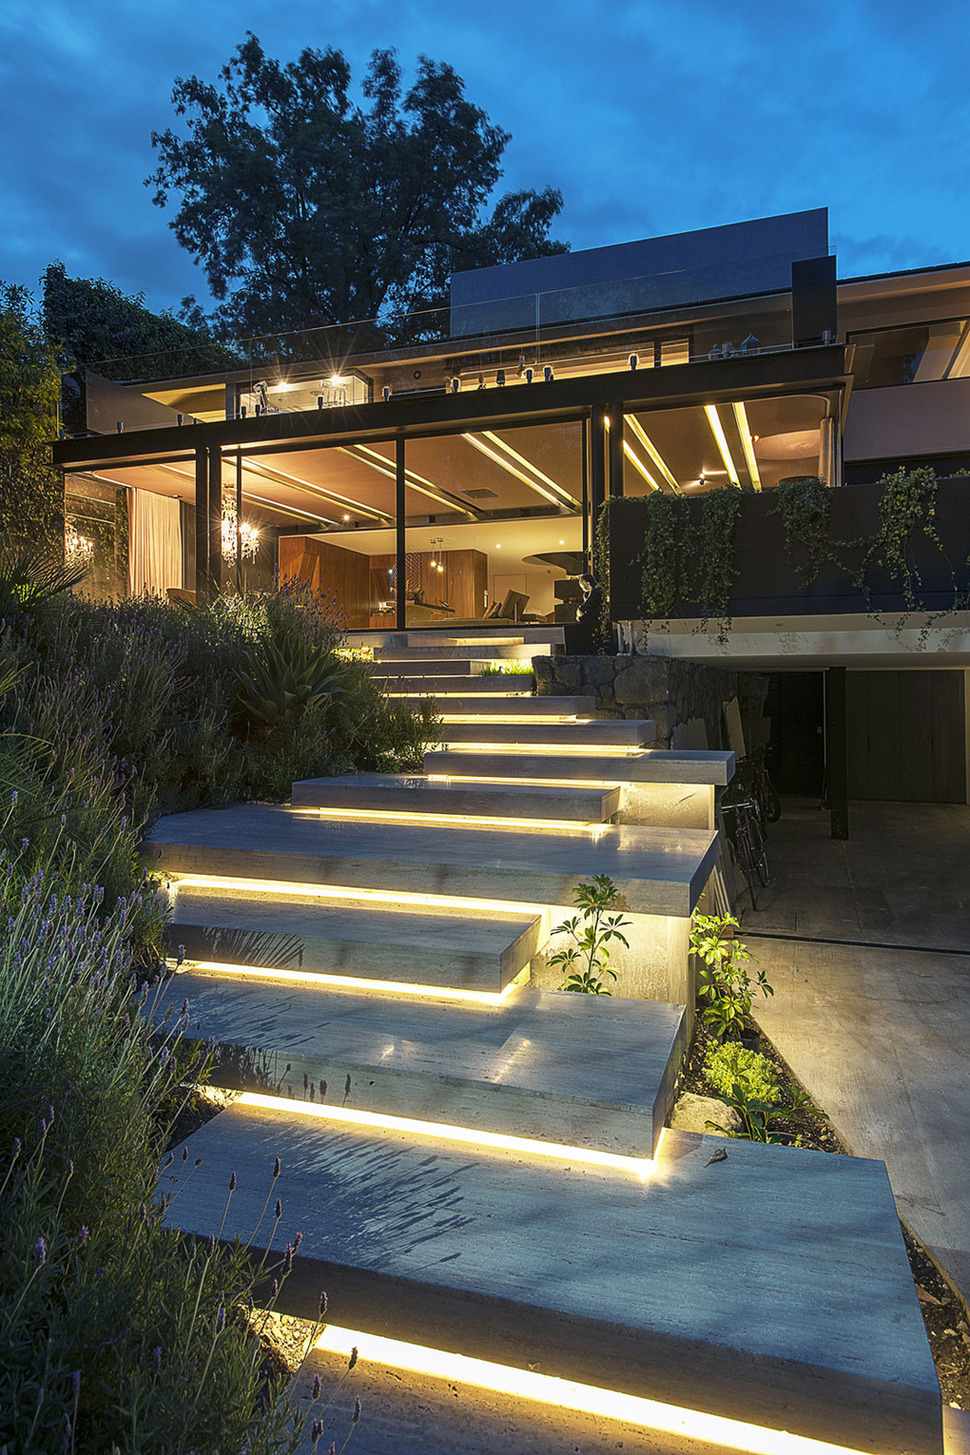 Home Expansion adds Steel and Glass to Concrete Structure ...